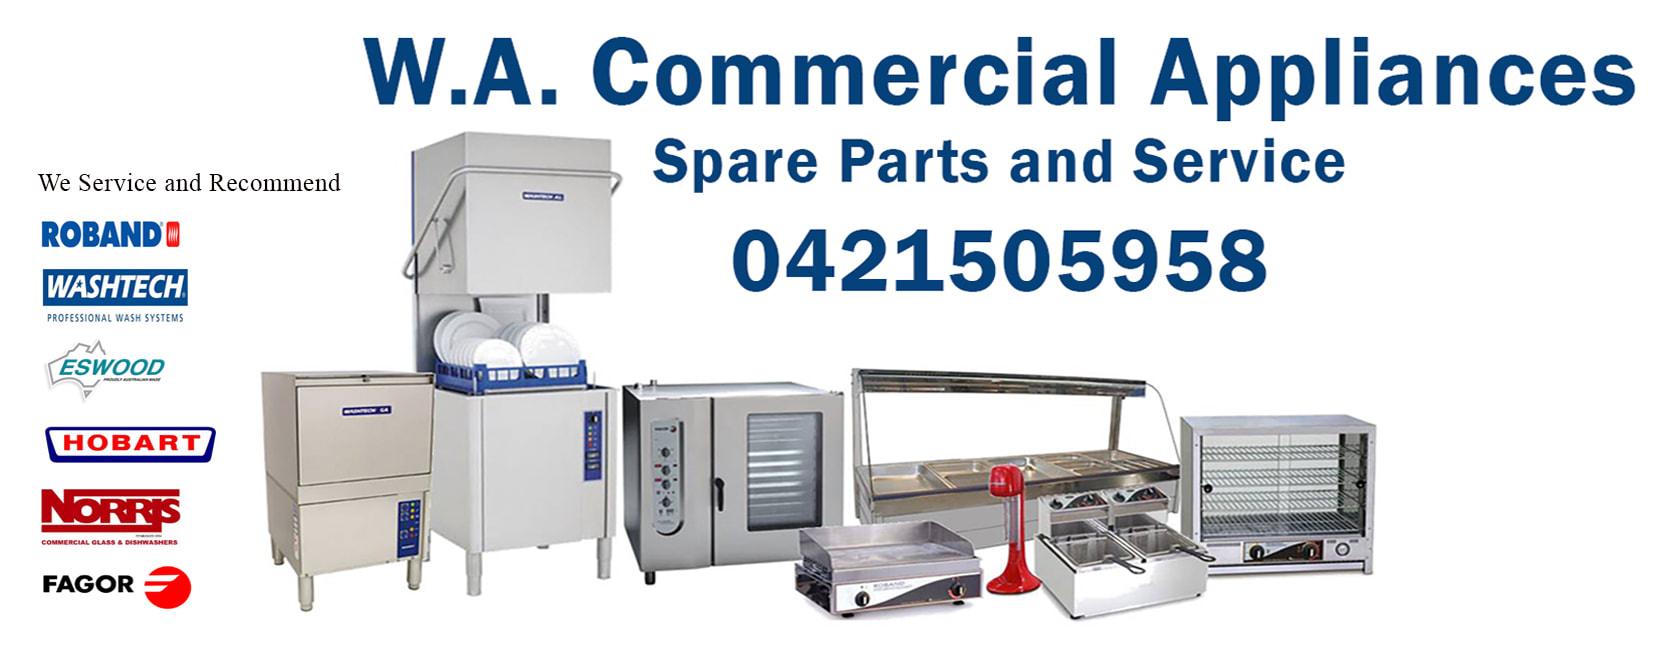 W A Commercial Appliances Repairs Spare Parts And